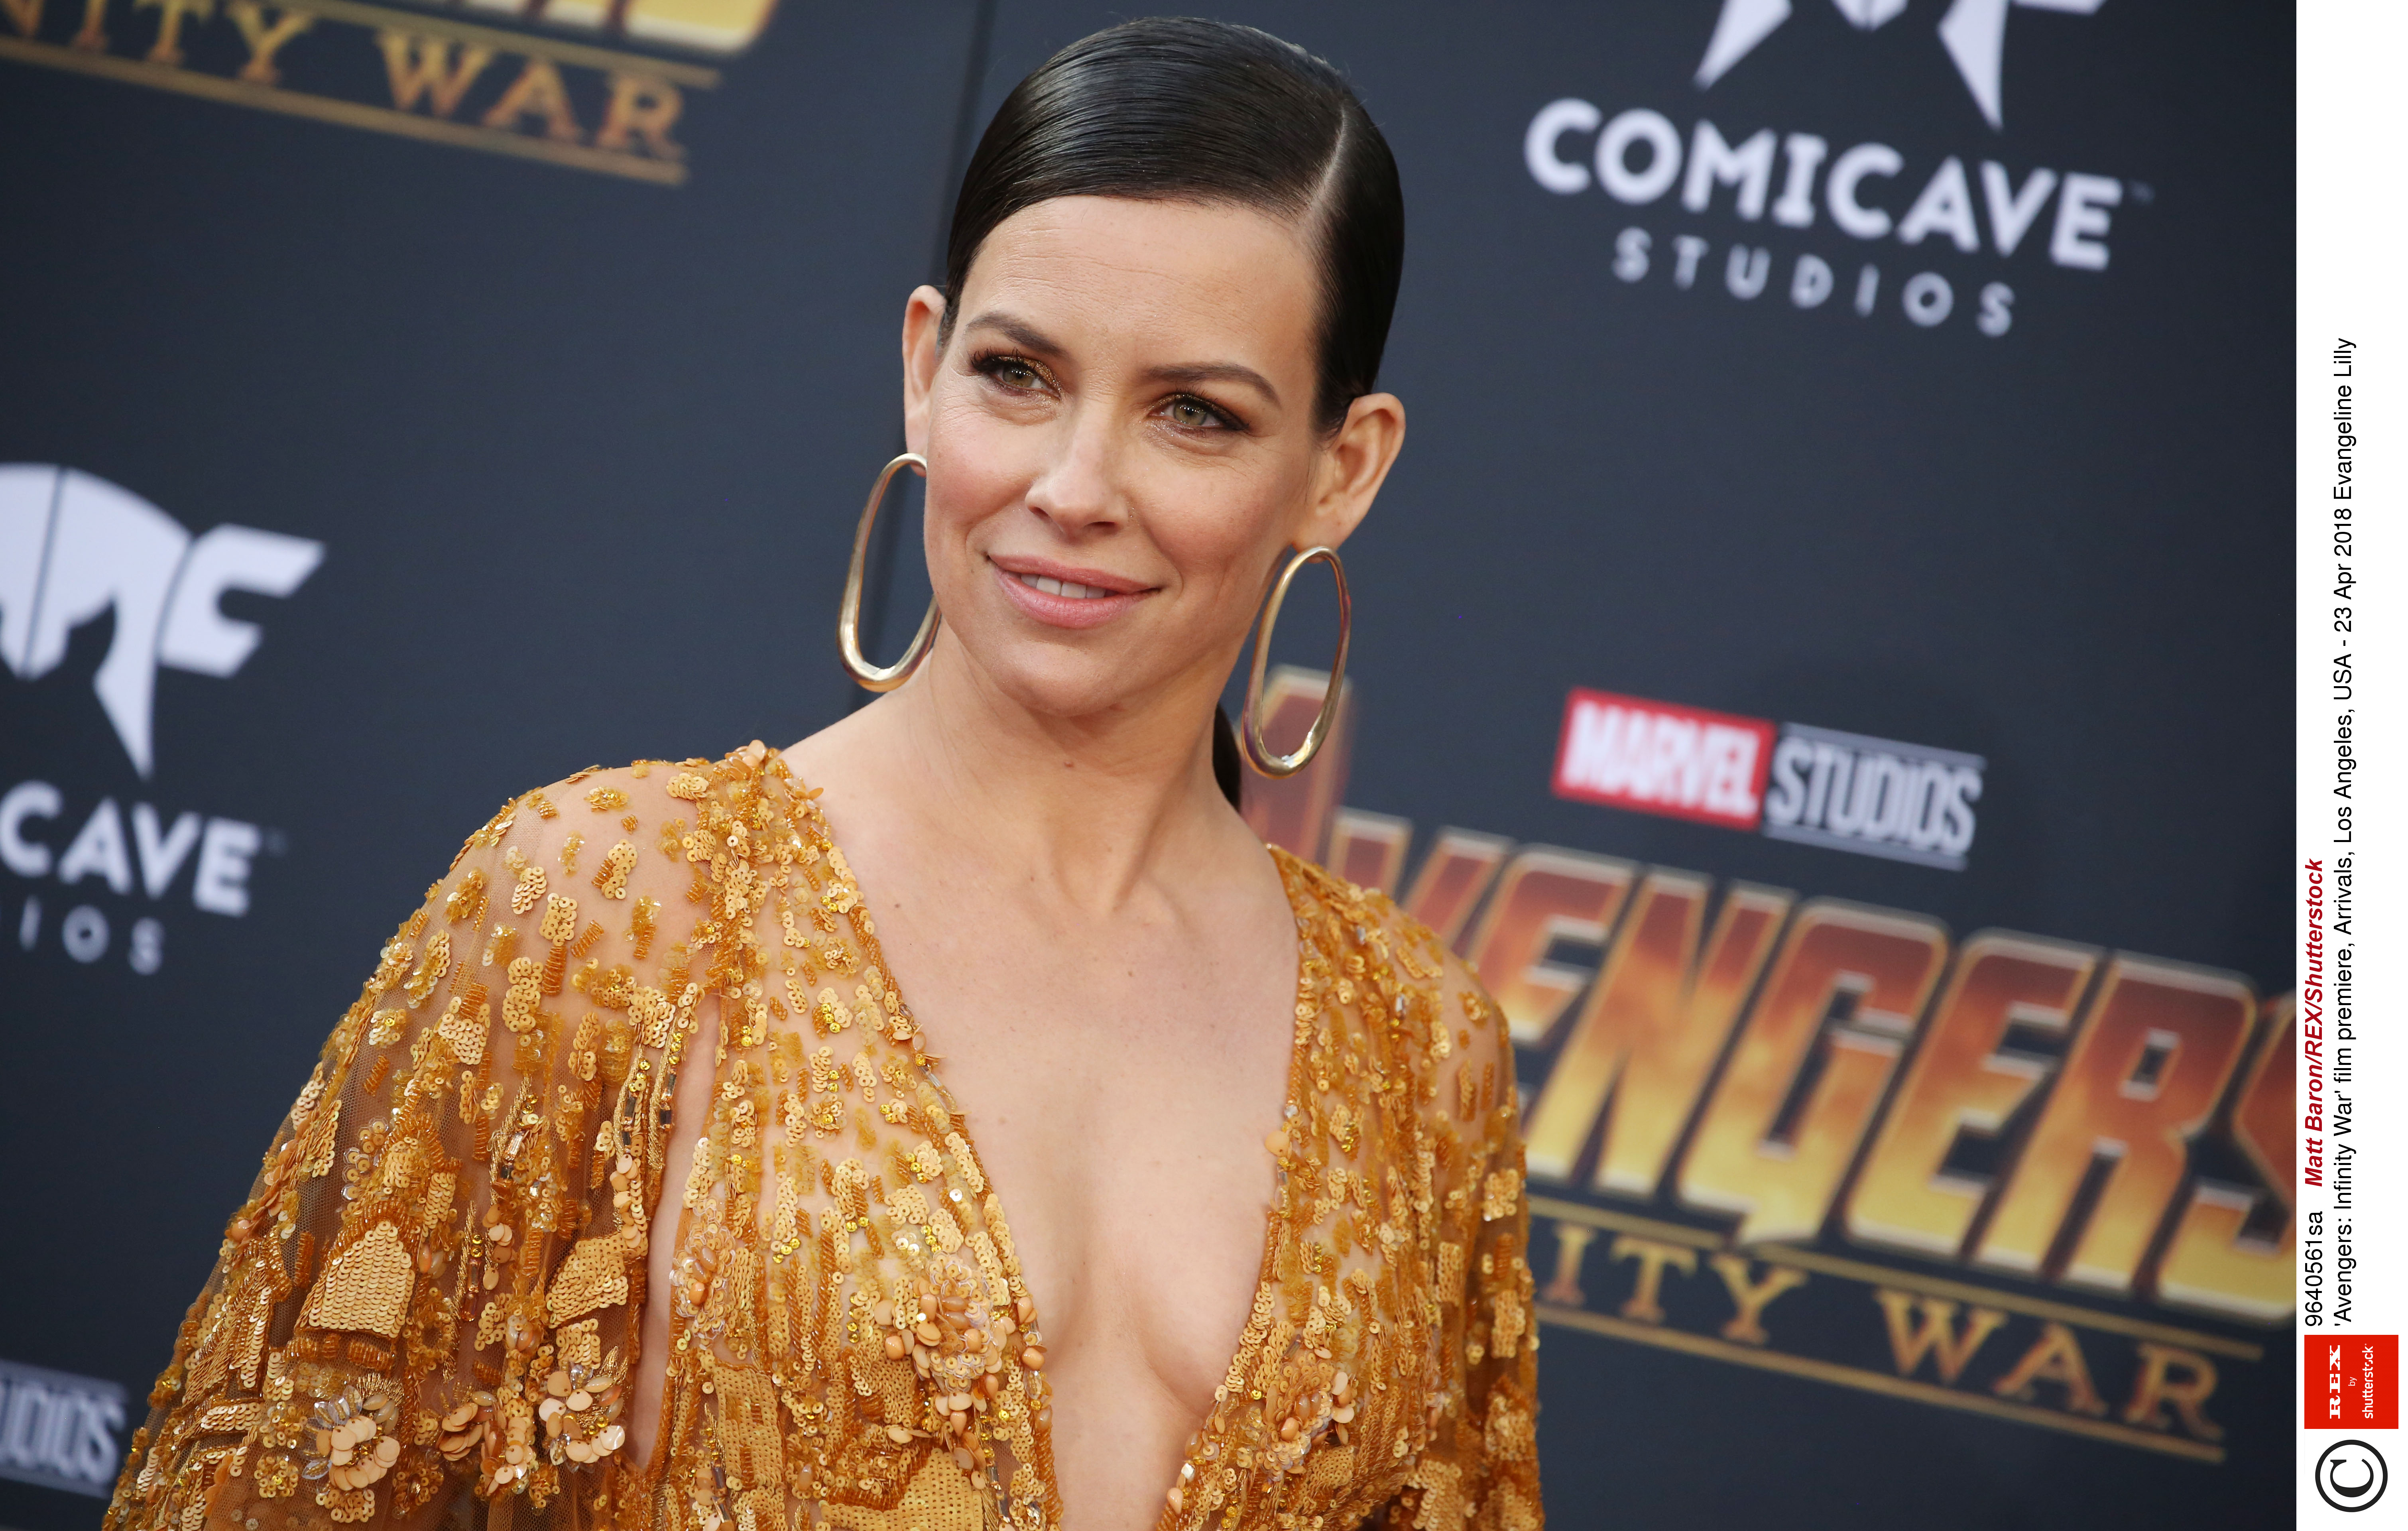 Evangeline Lilly Breasts photo 9